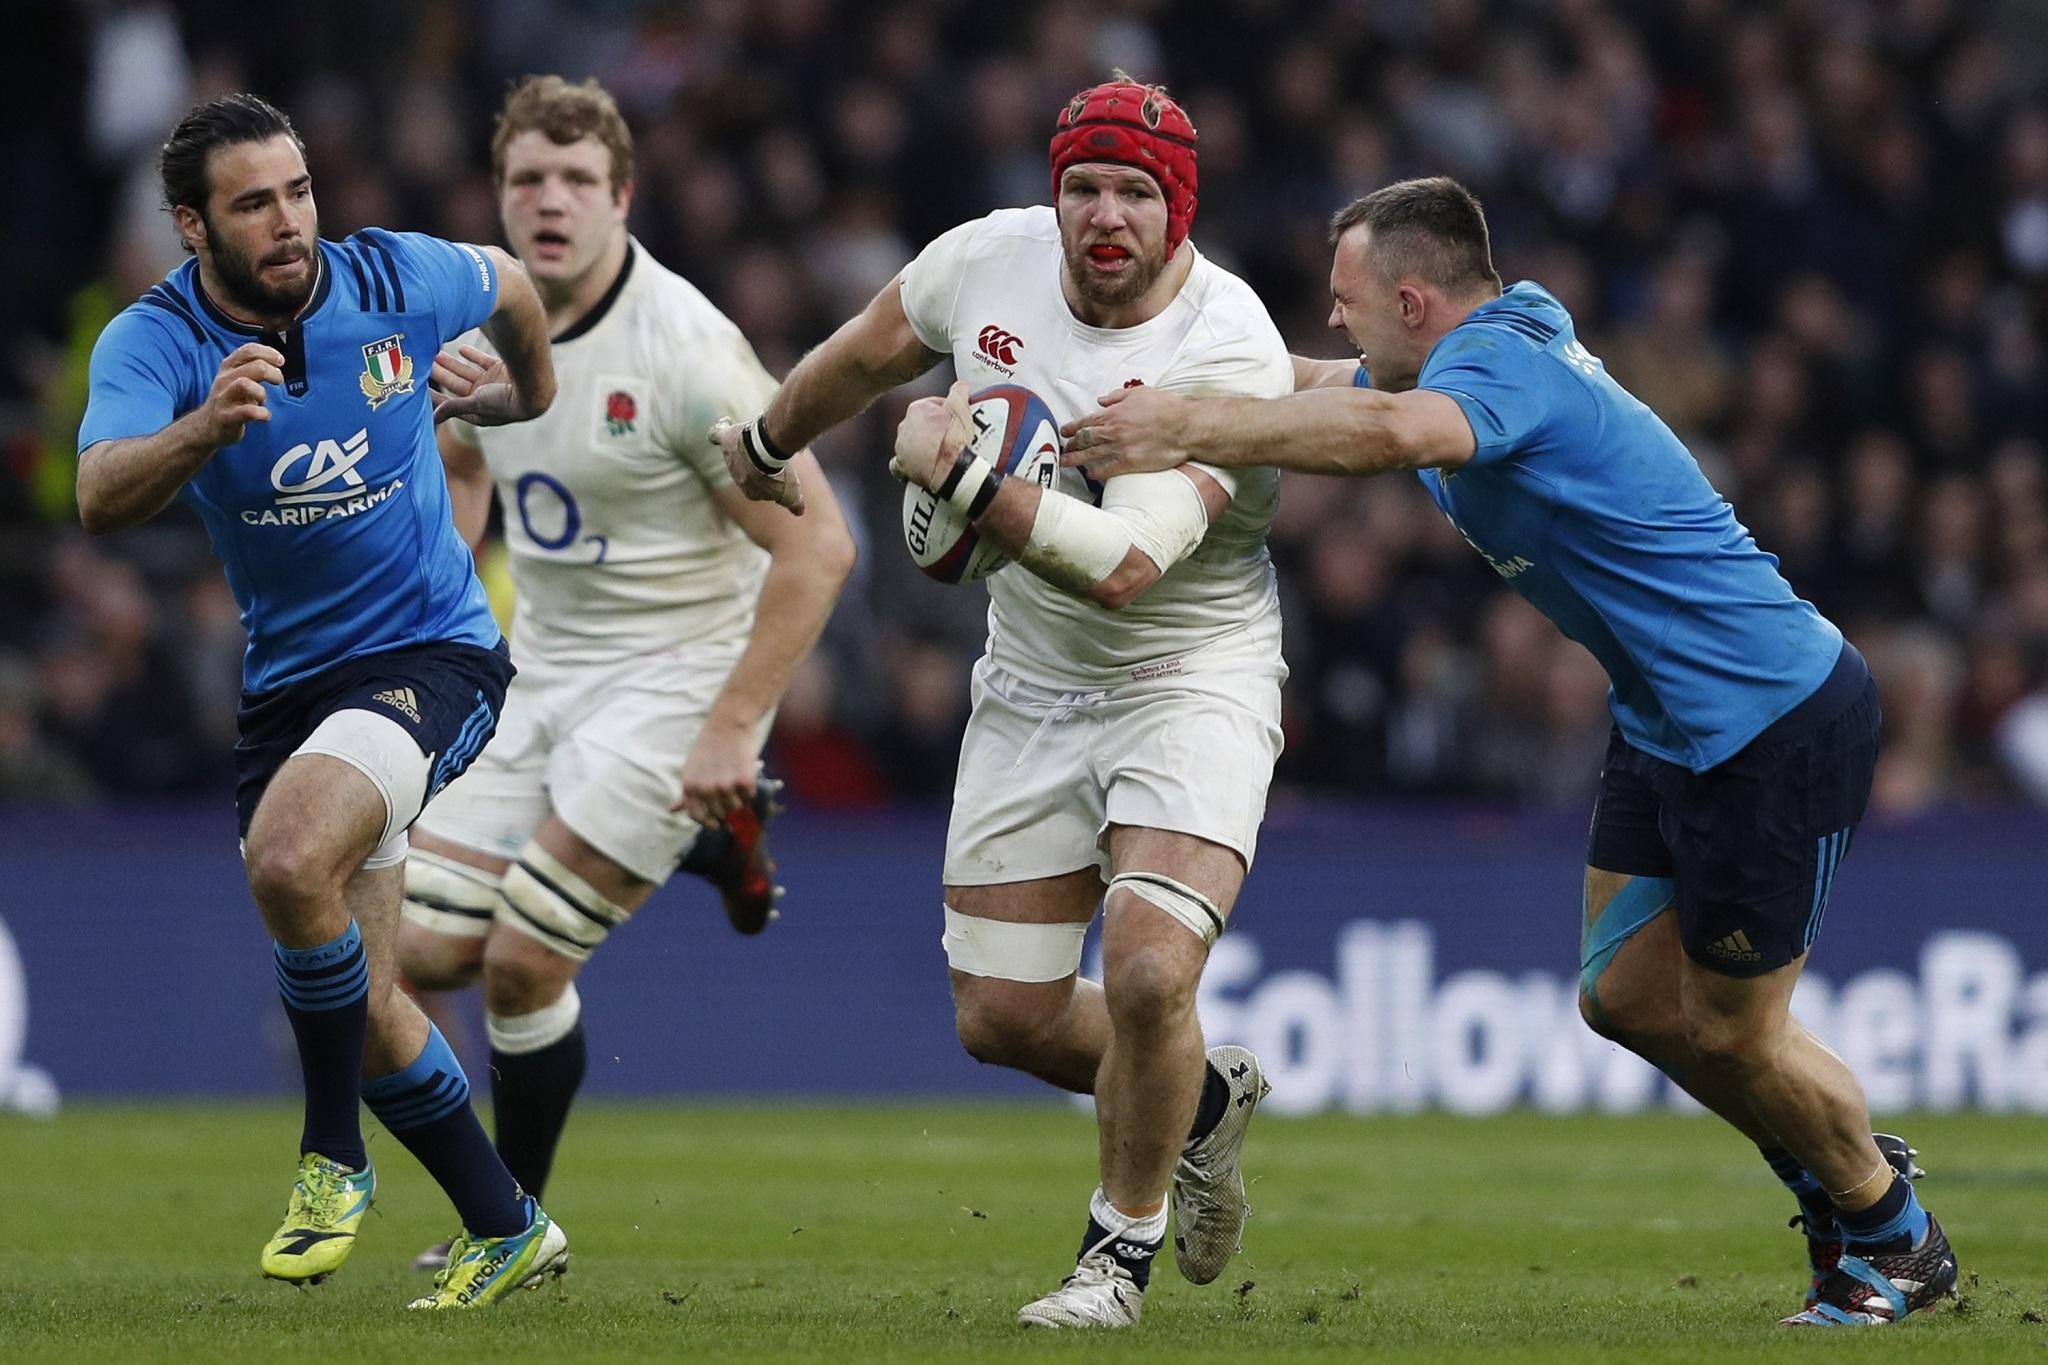 c0113a6f7fe James Haskell defends his questioning of referee Romain Poite after England  were left 'rattled' by Italy tactics | The Independent